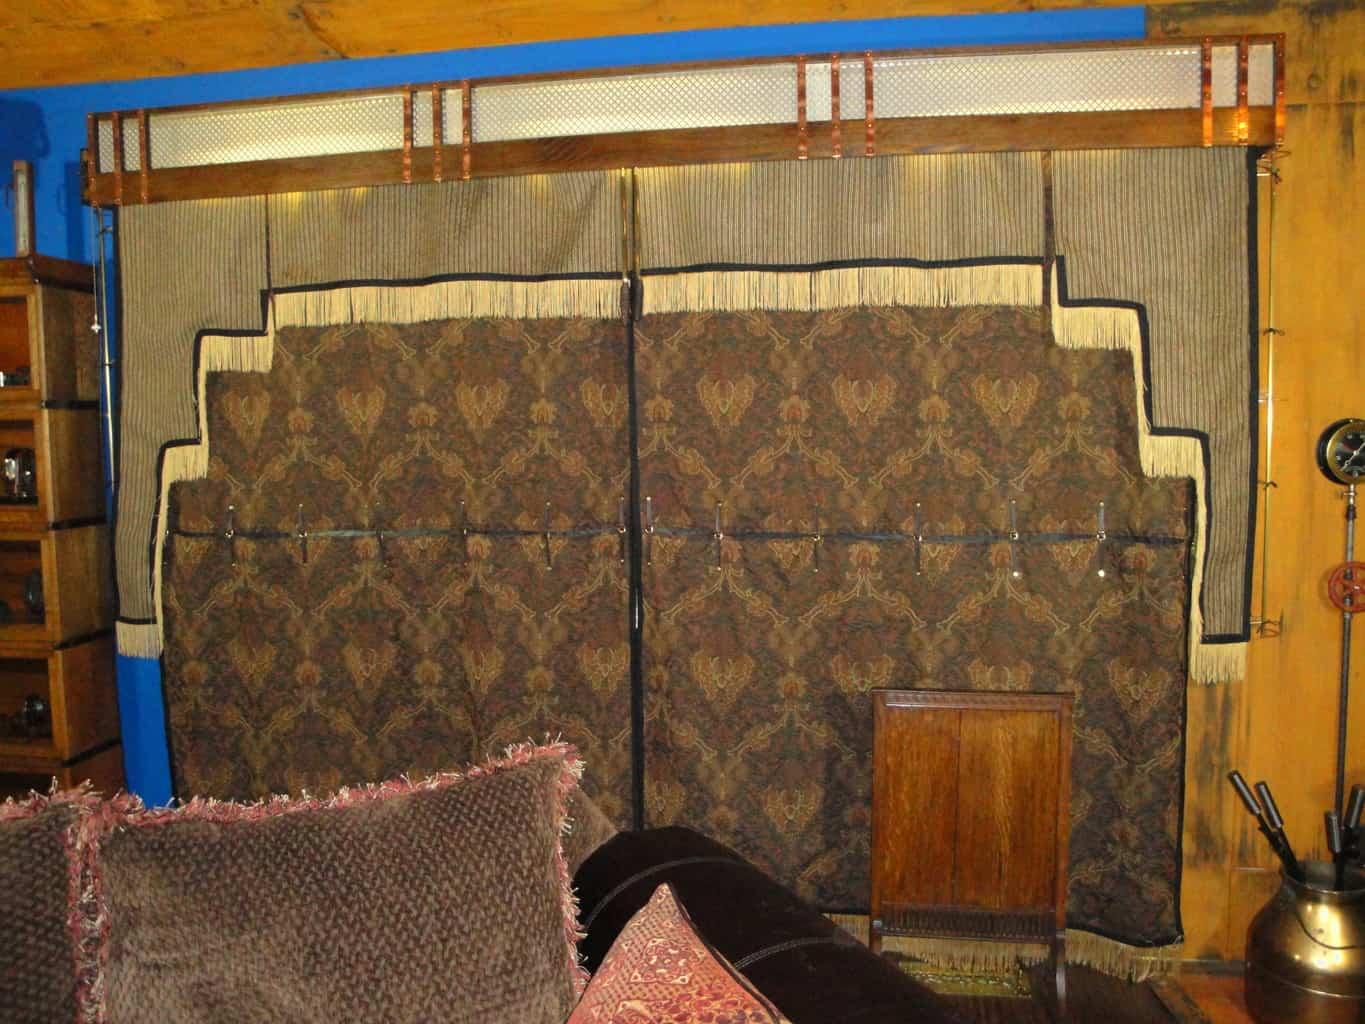 22 Steampunk Exit Curtained